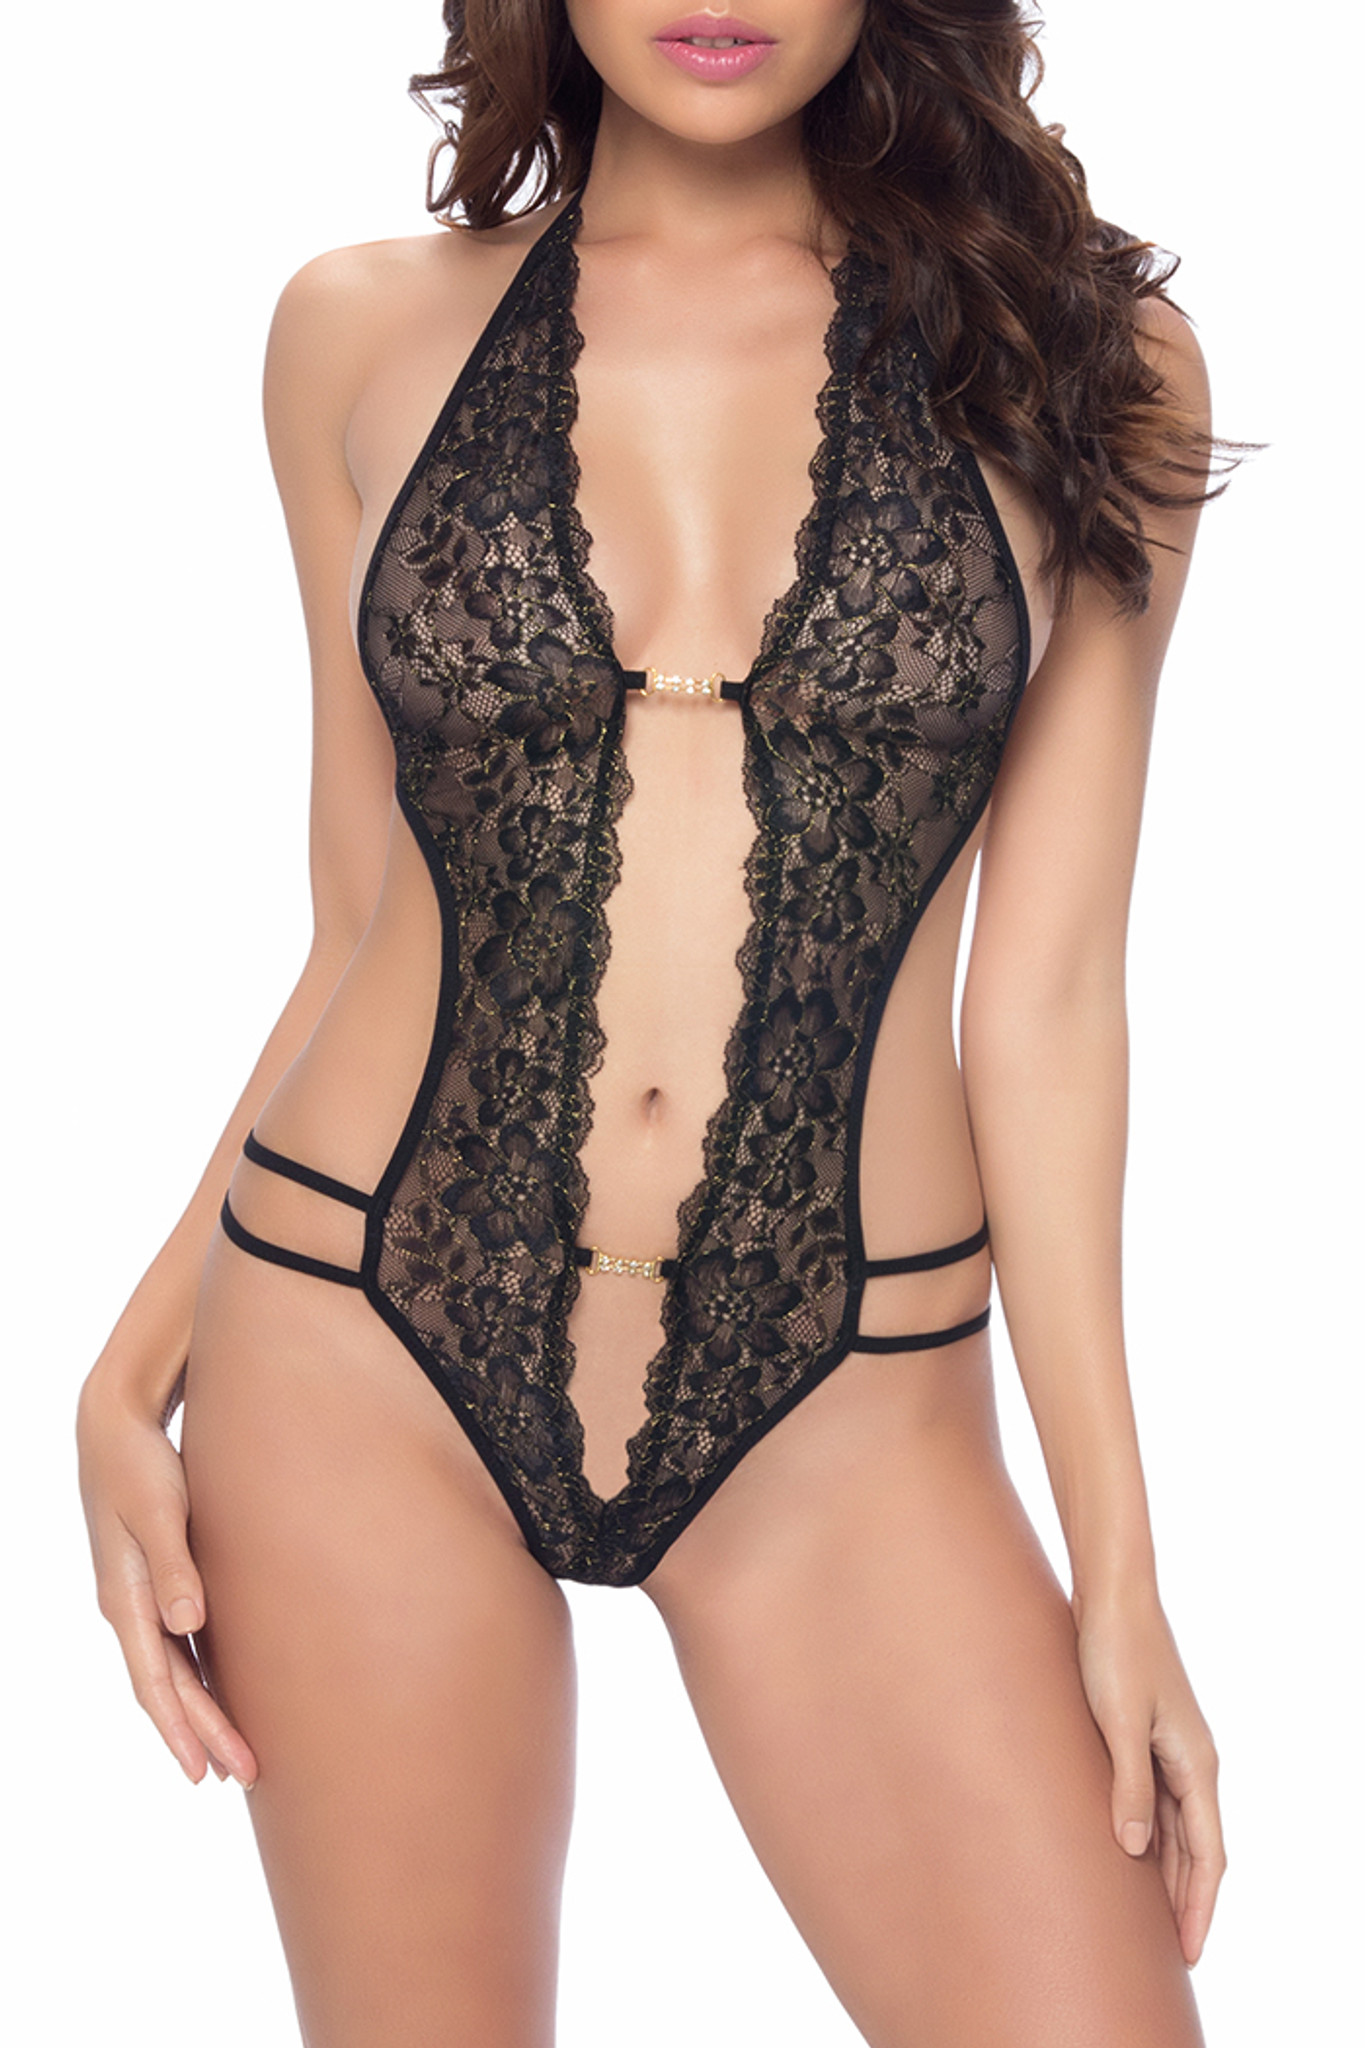 Royal Welcome Crotchless Lace Teddy